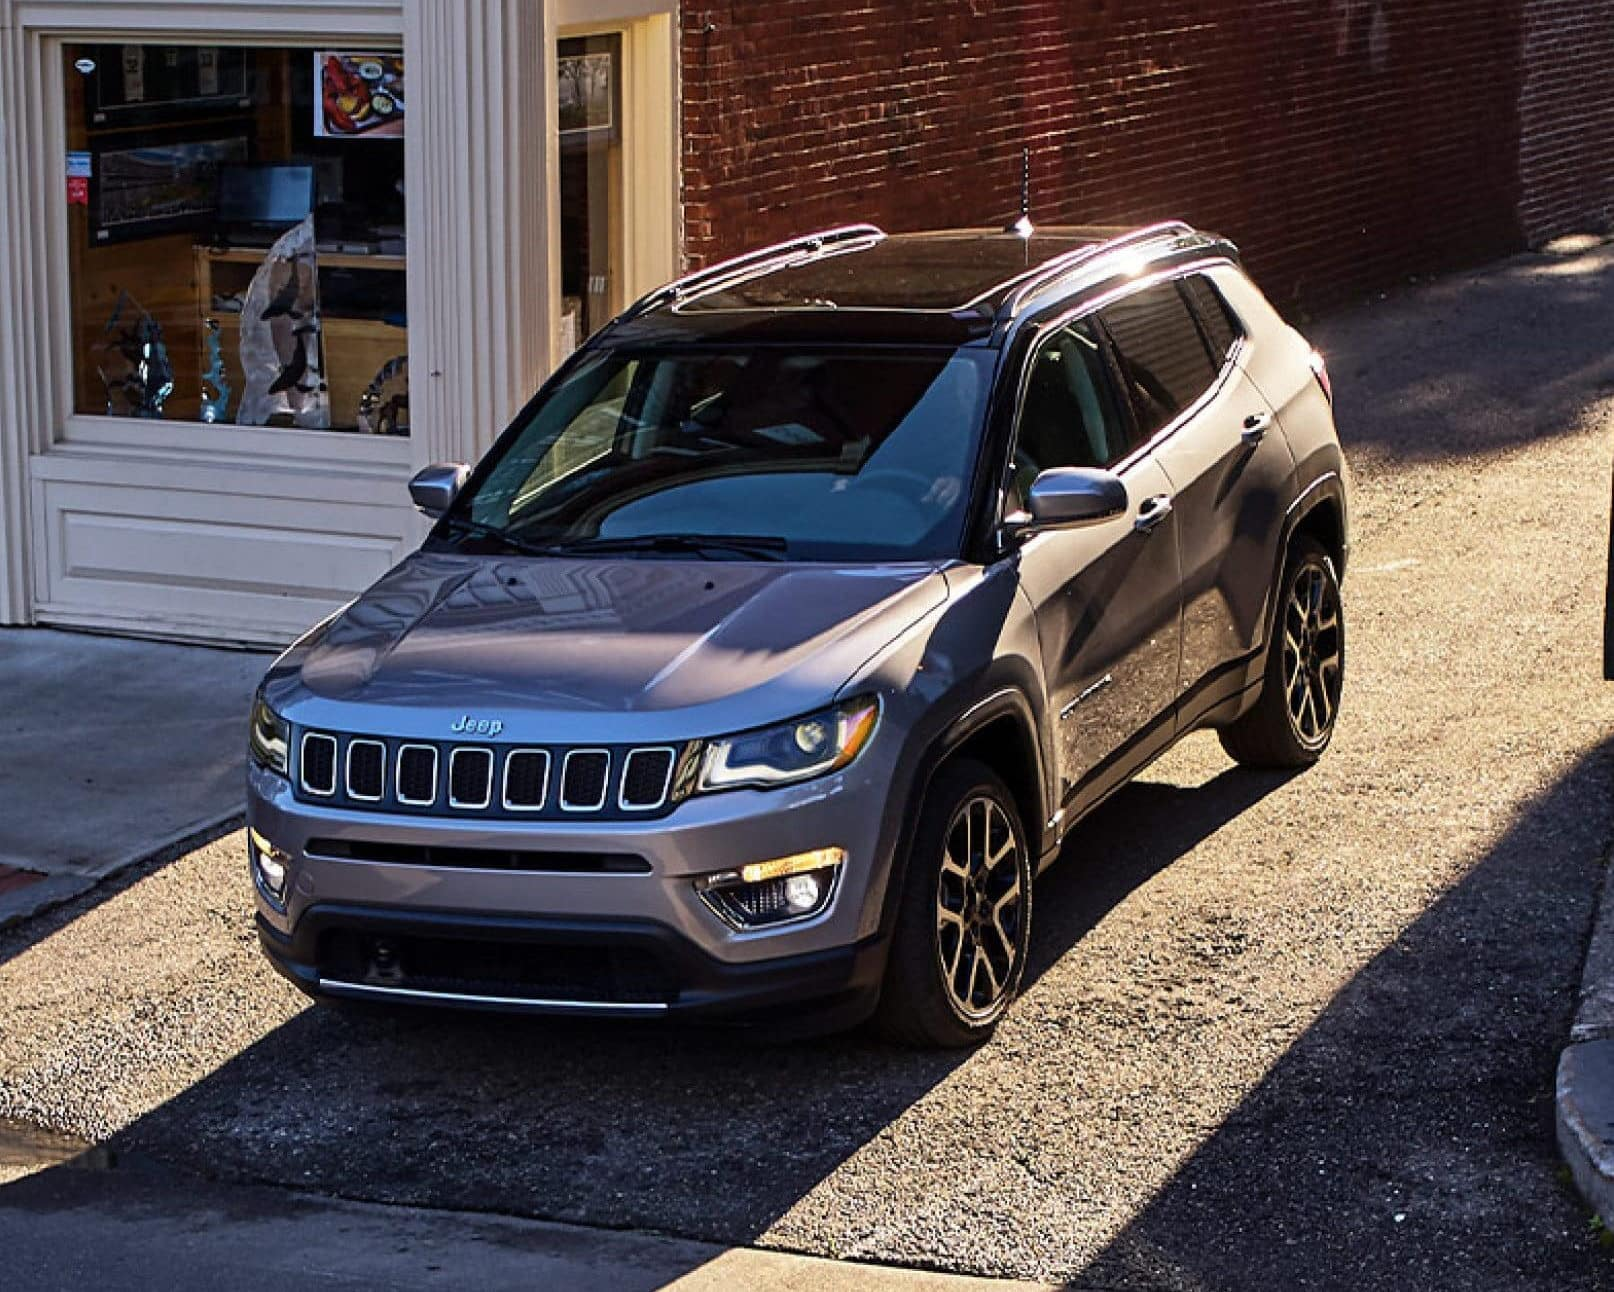 2021 Jeep Compass exterior front view